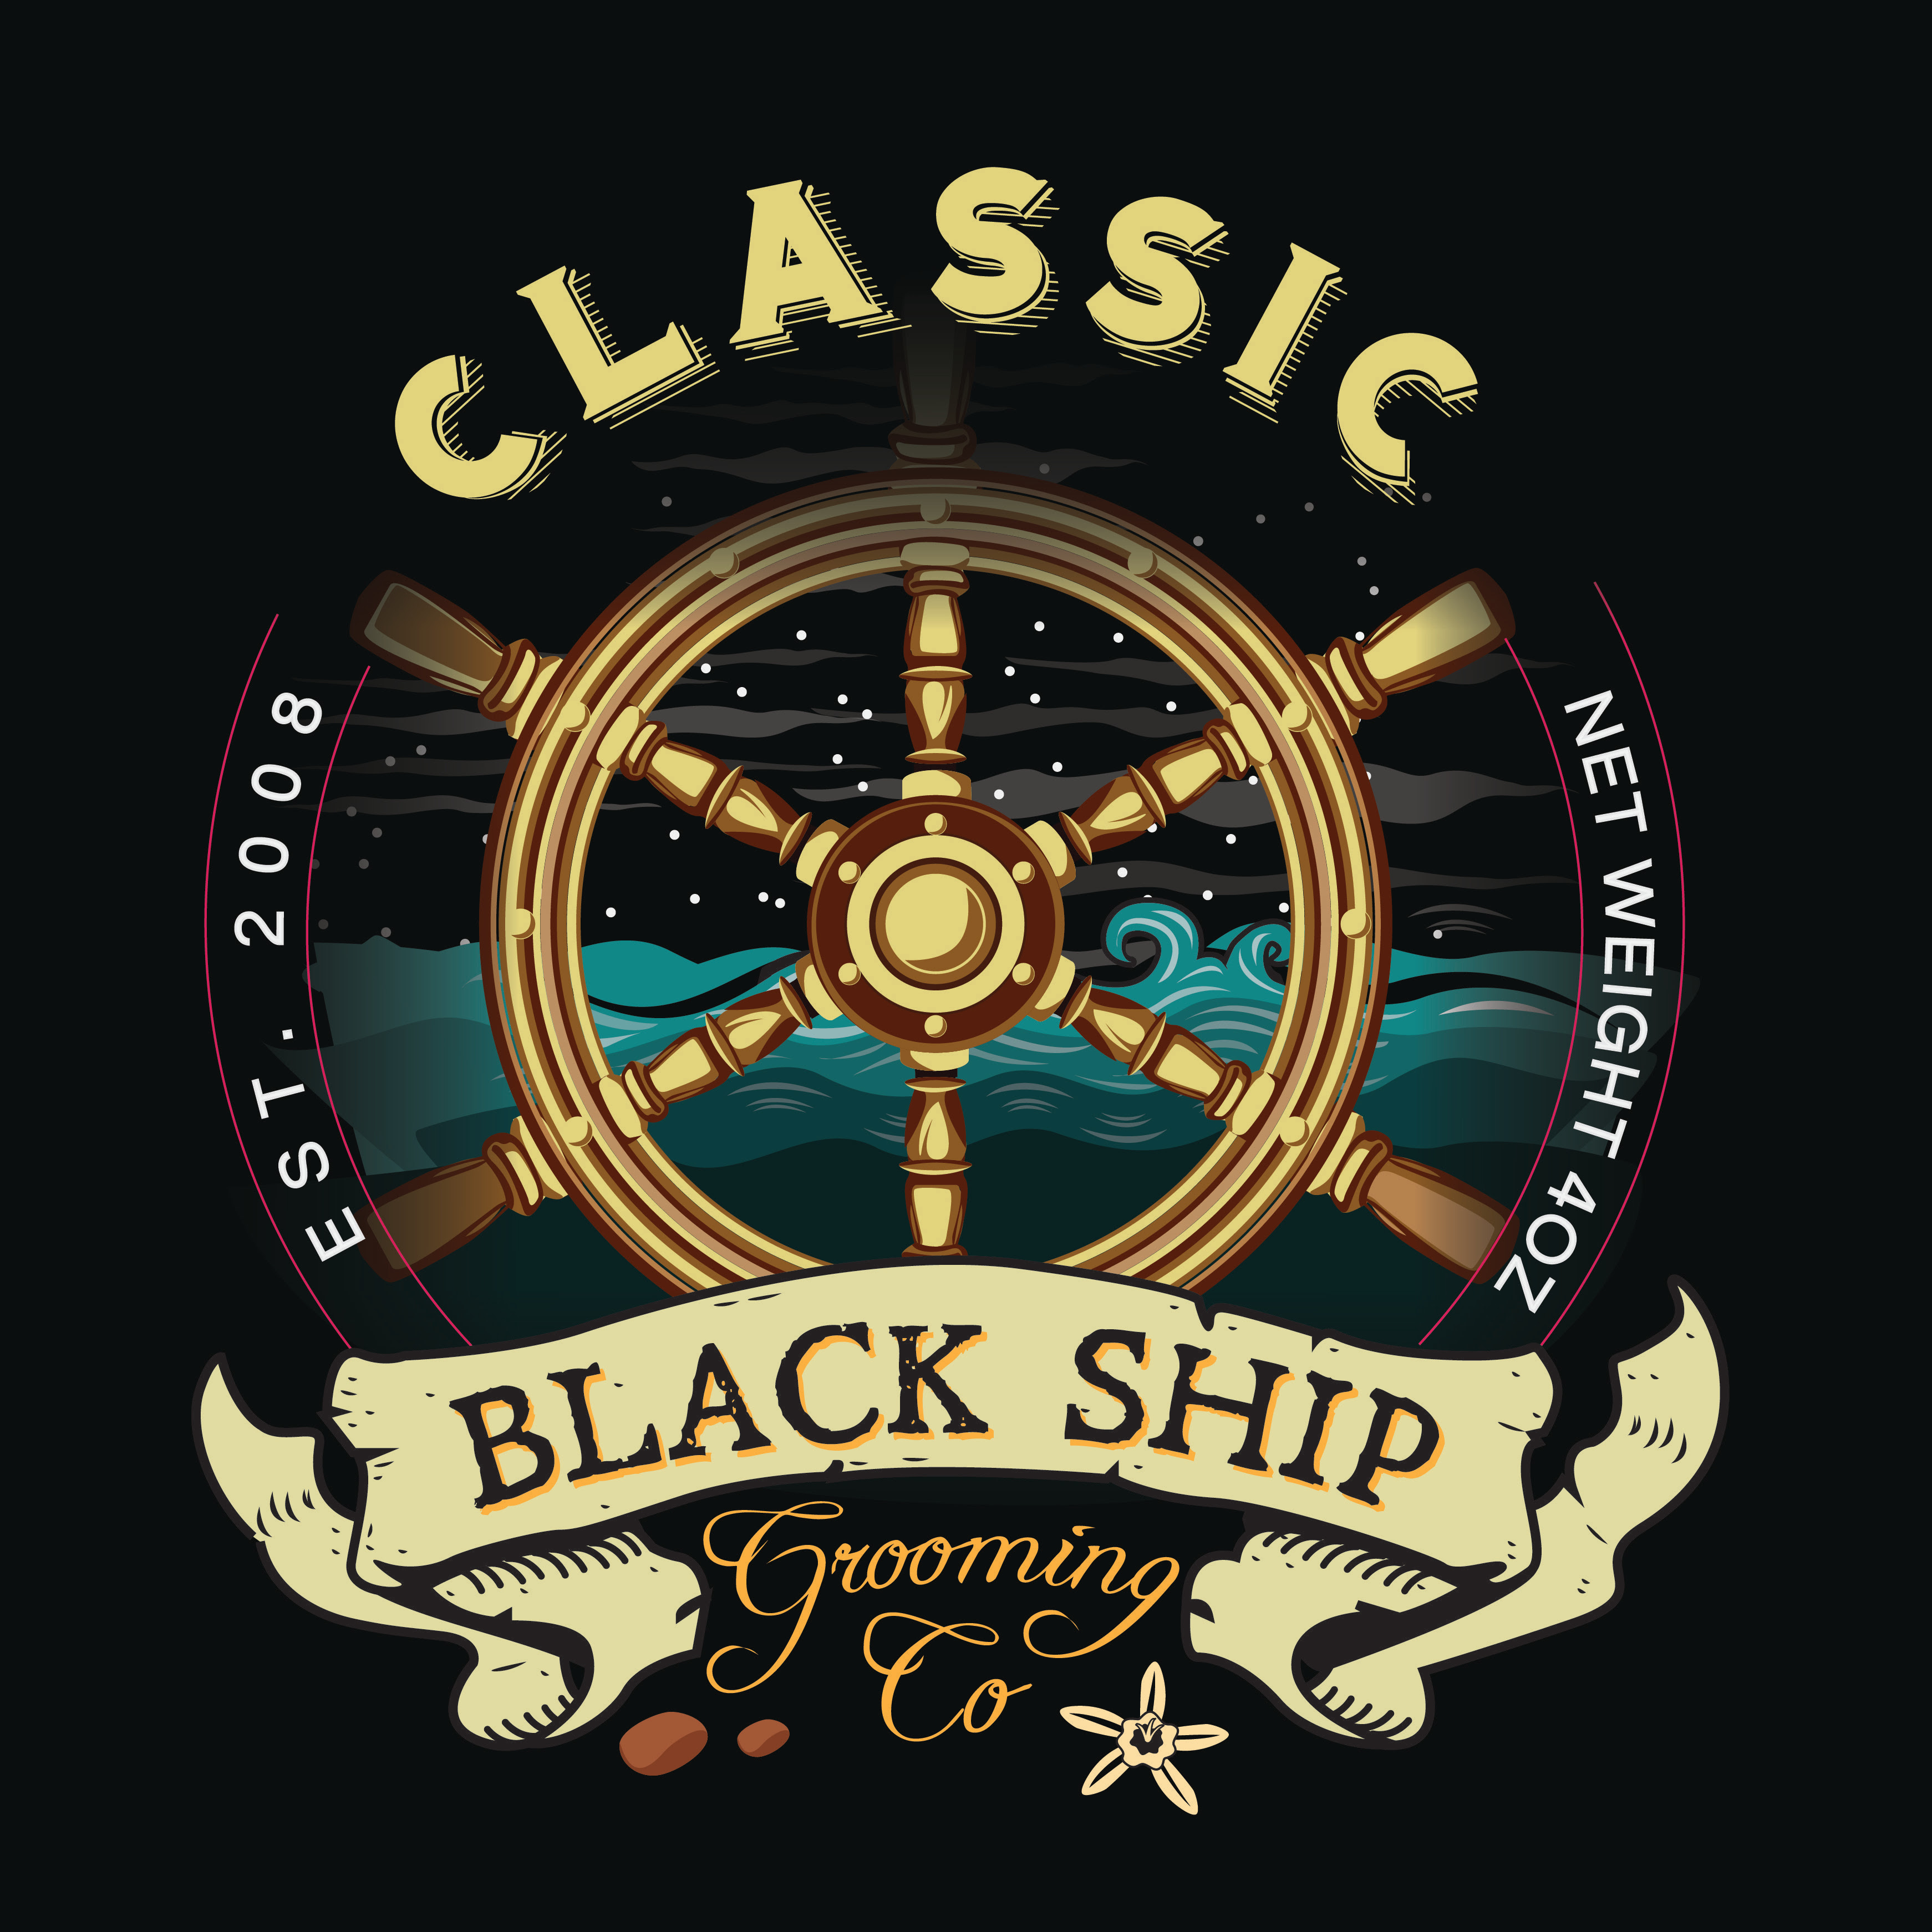 Black Ship Grooming - Classic - Aftershave image